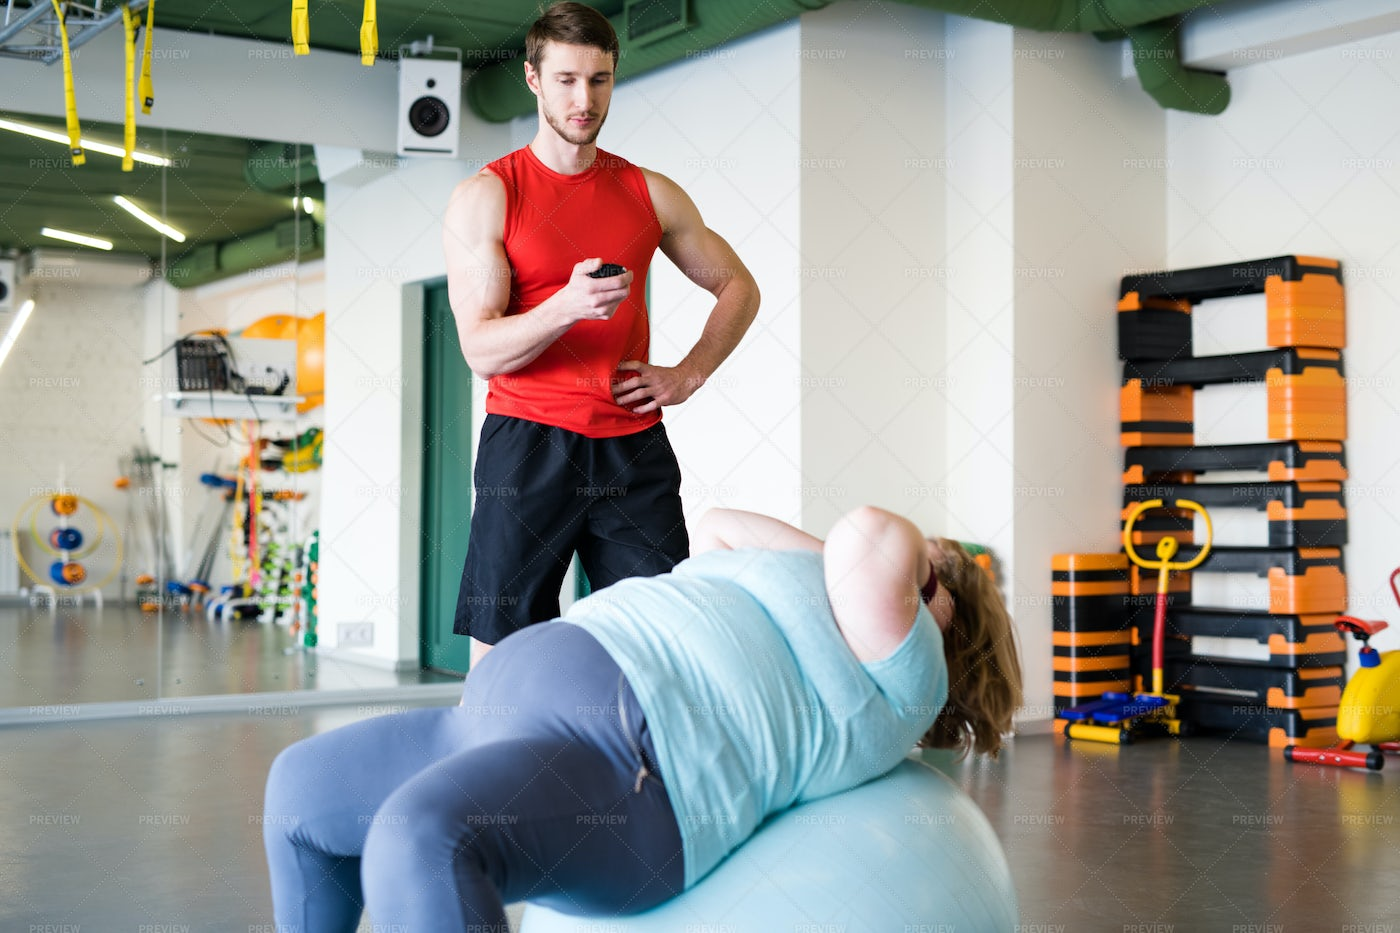 Obese Woman Training In Fitness...: Stock Photos